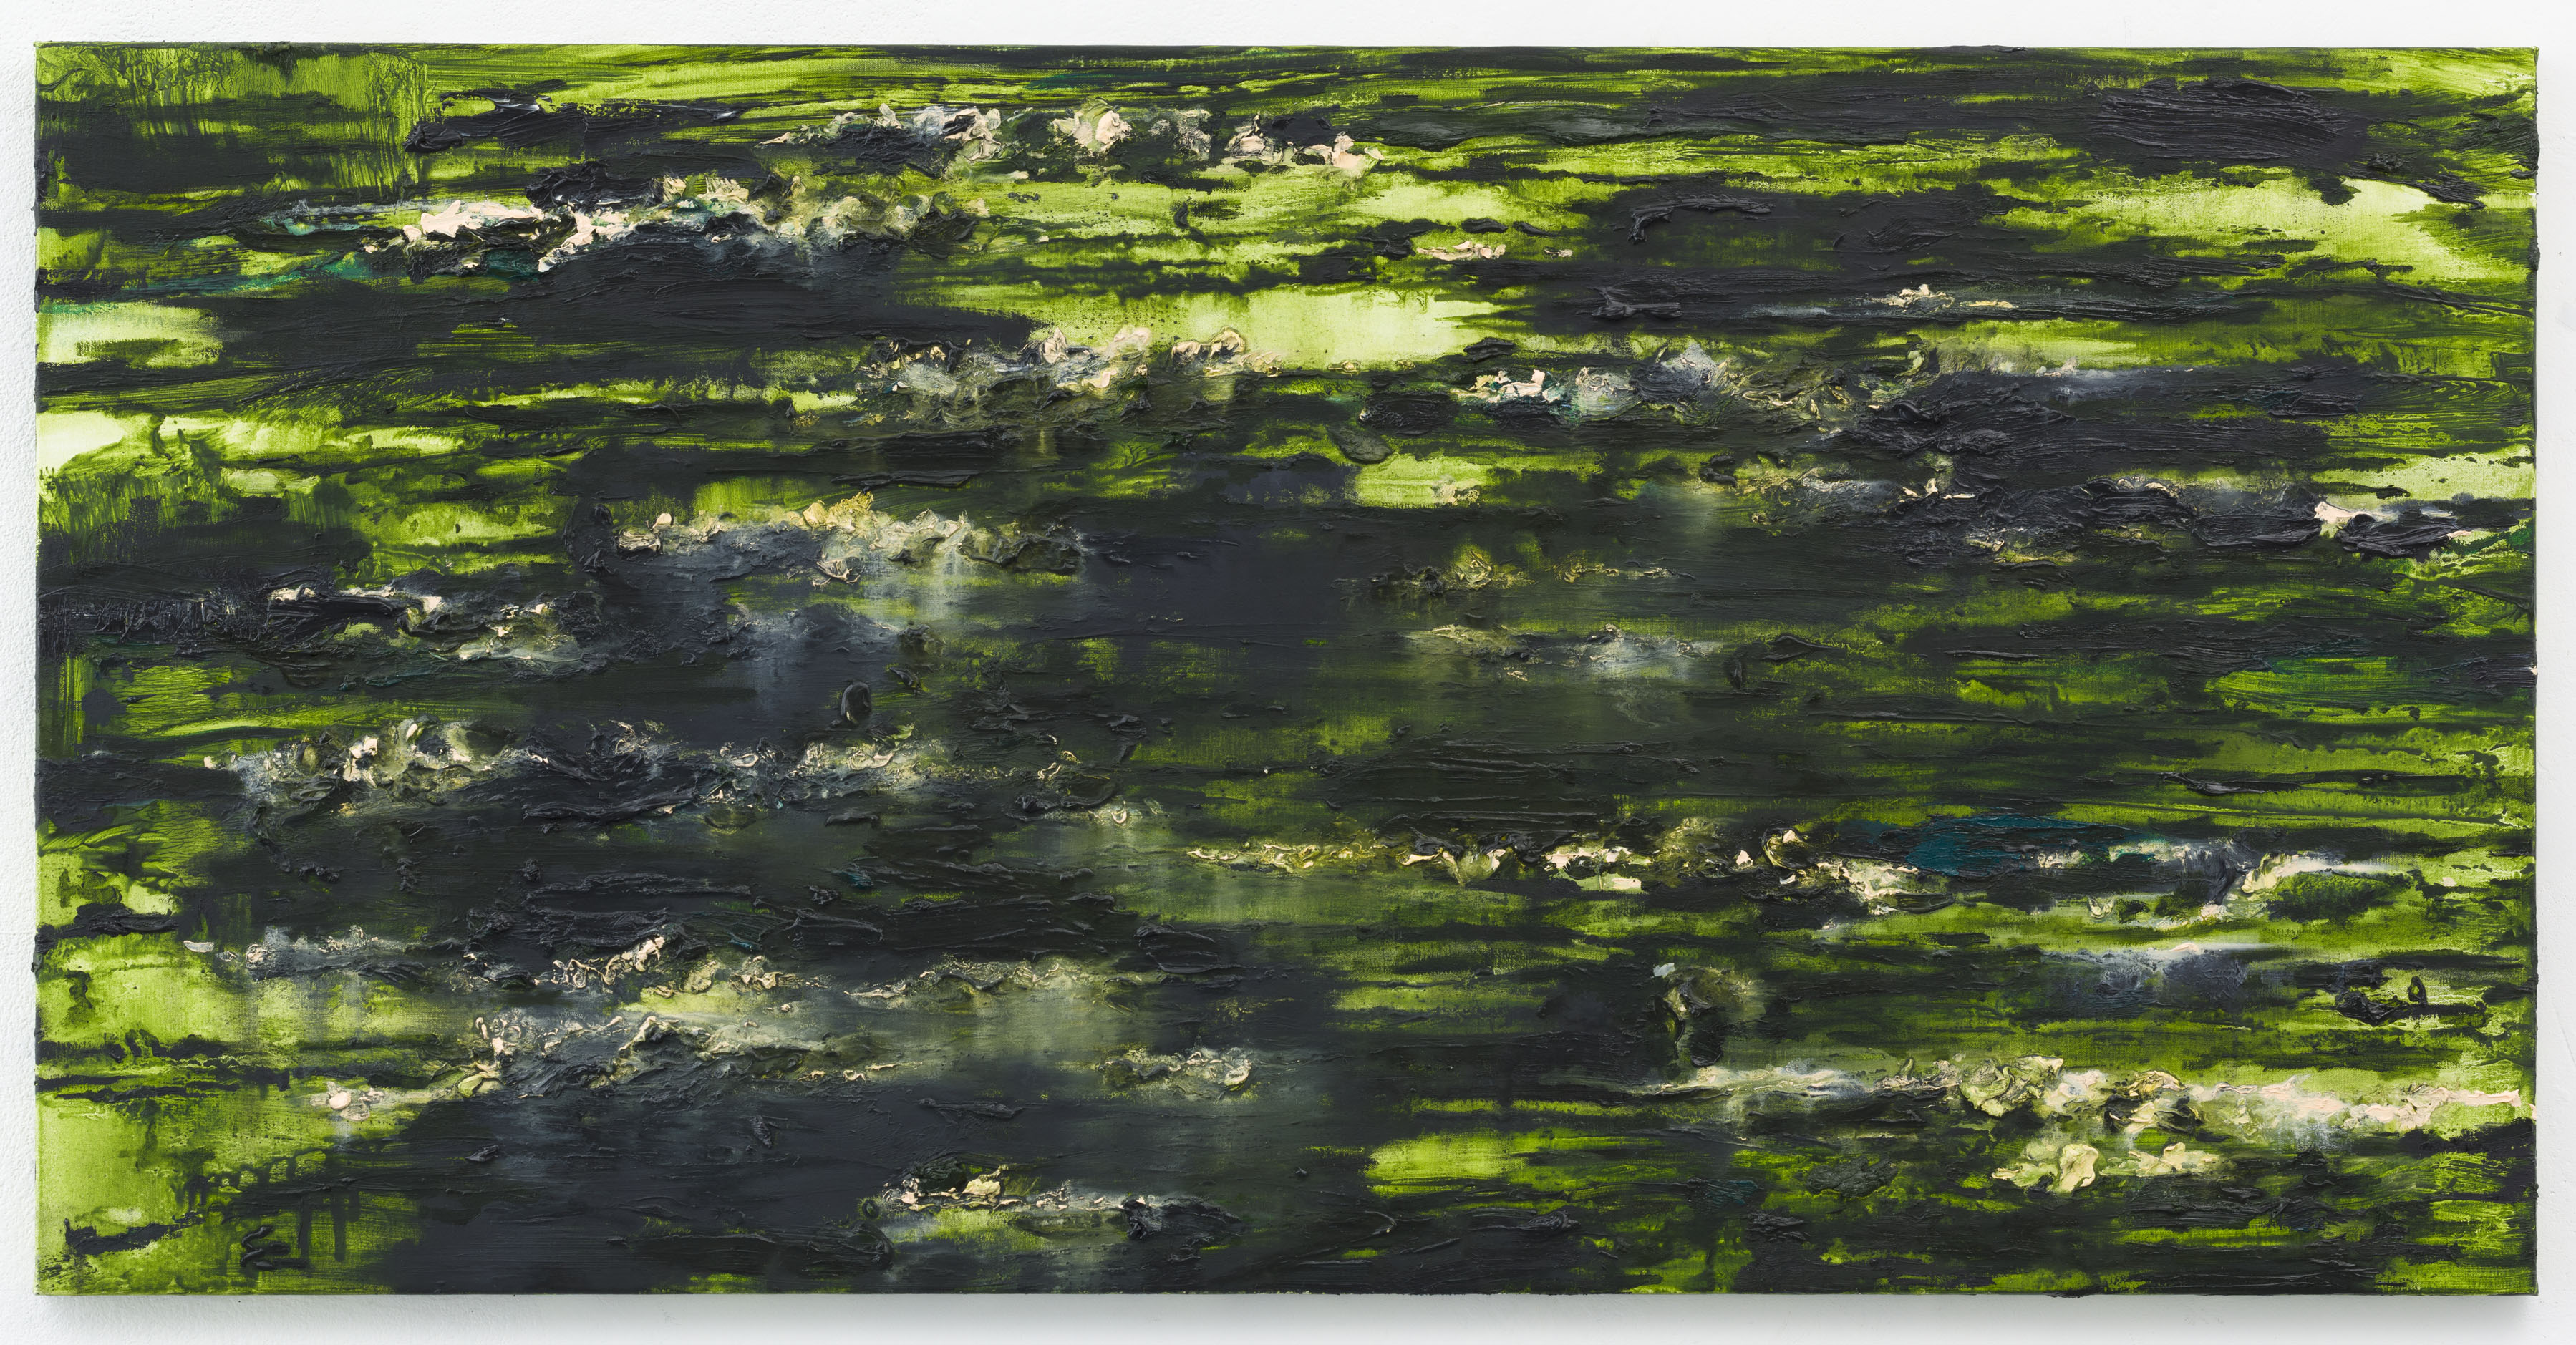 """Etang des Nympheas III"" 70 x 140 cm. oil on linen 2013"